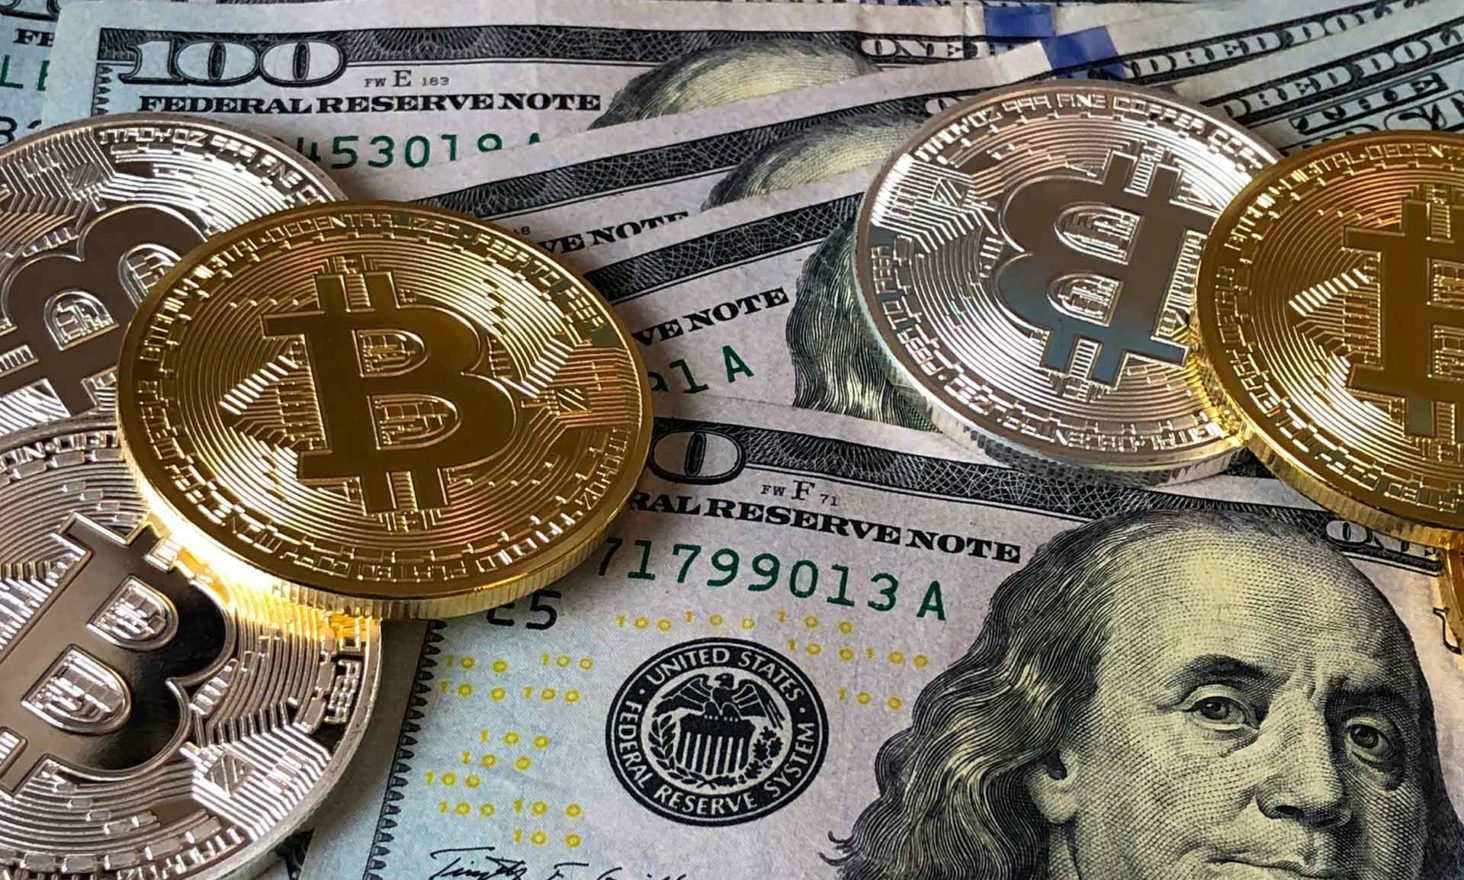 San Francisco Fed Head: Crypto Is Not A Currency